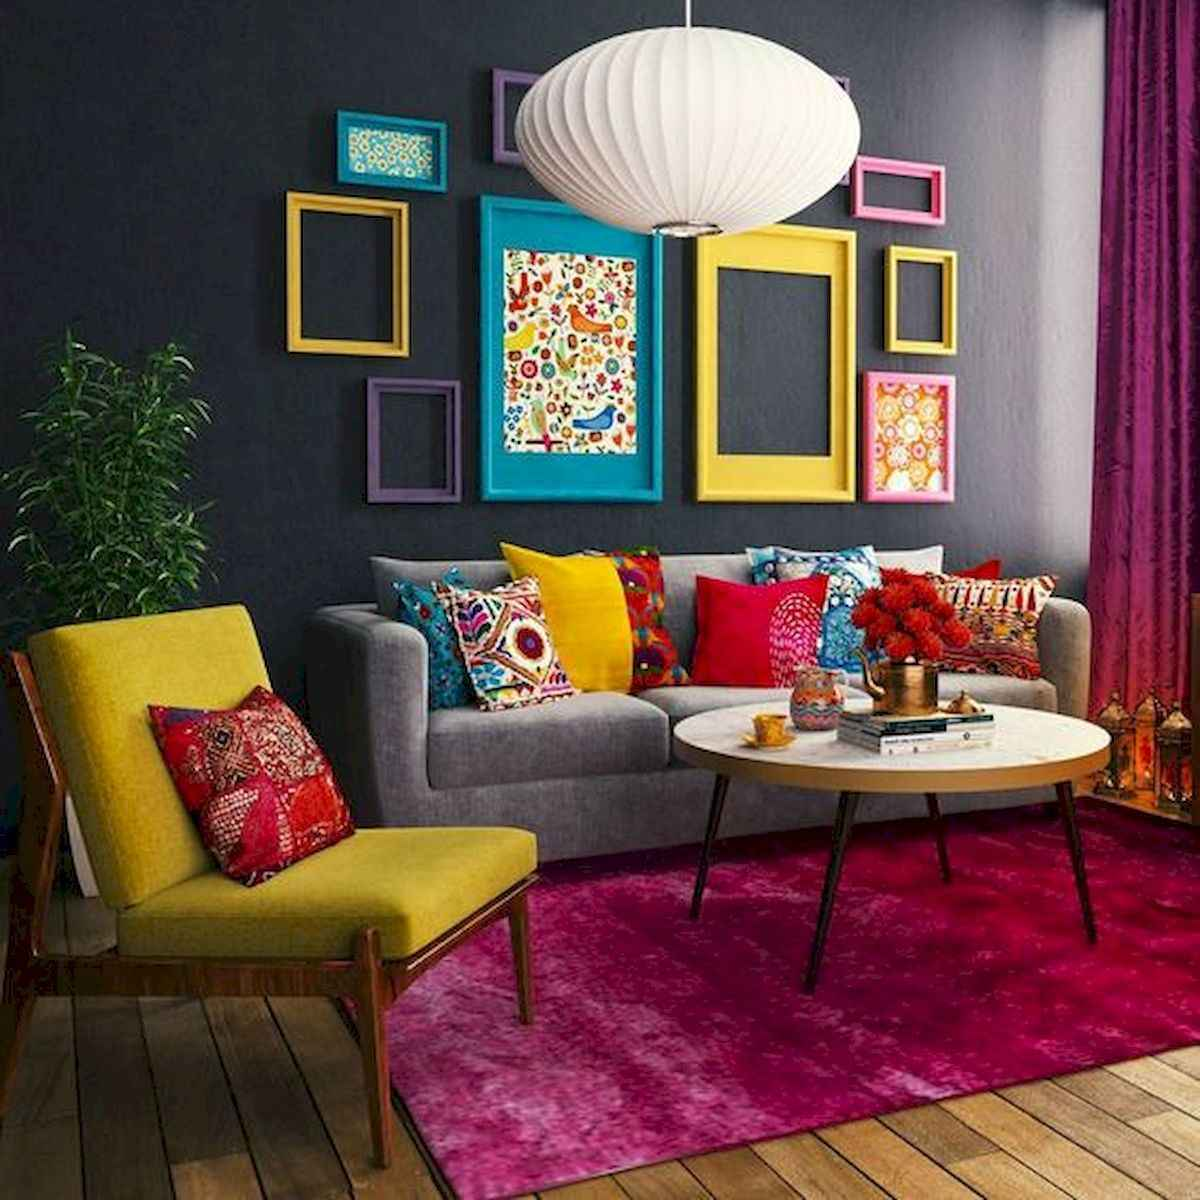 80+ Stunning Colorful Living Room Decor Ideas And Remodel for Summer Project (43)